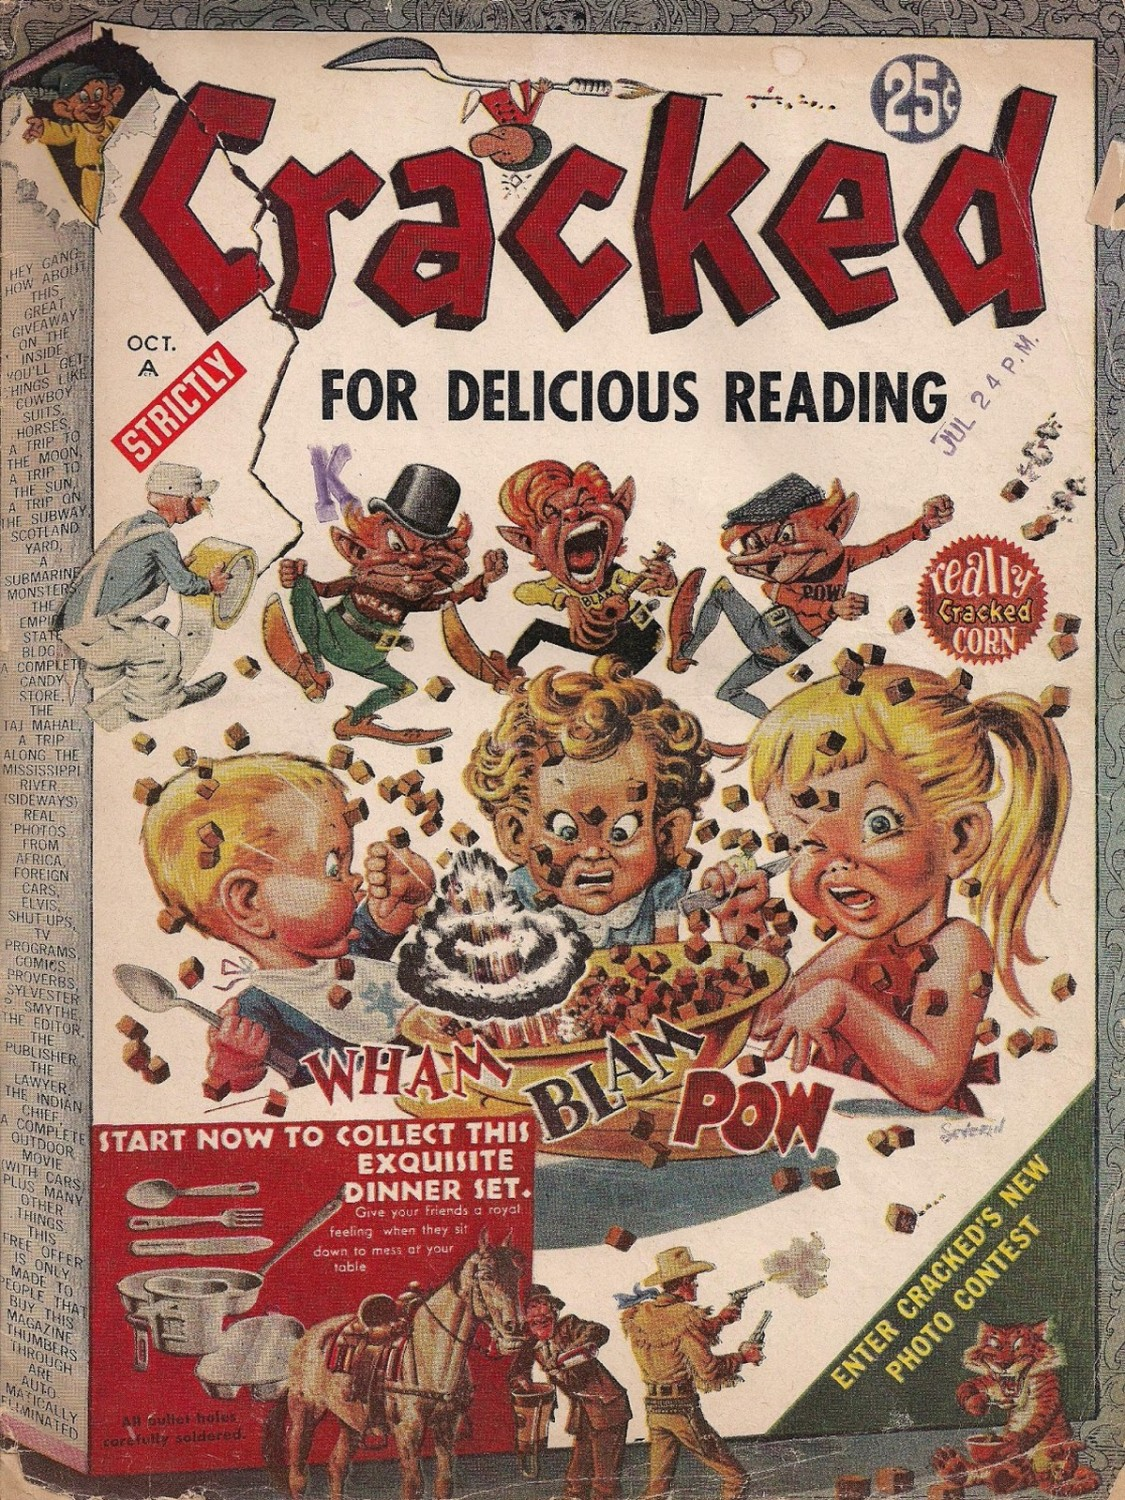 CRACKED (October 1958)